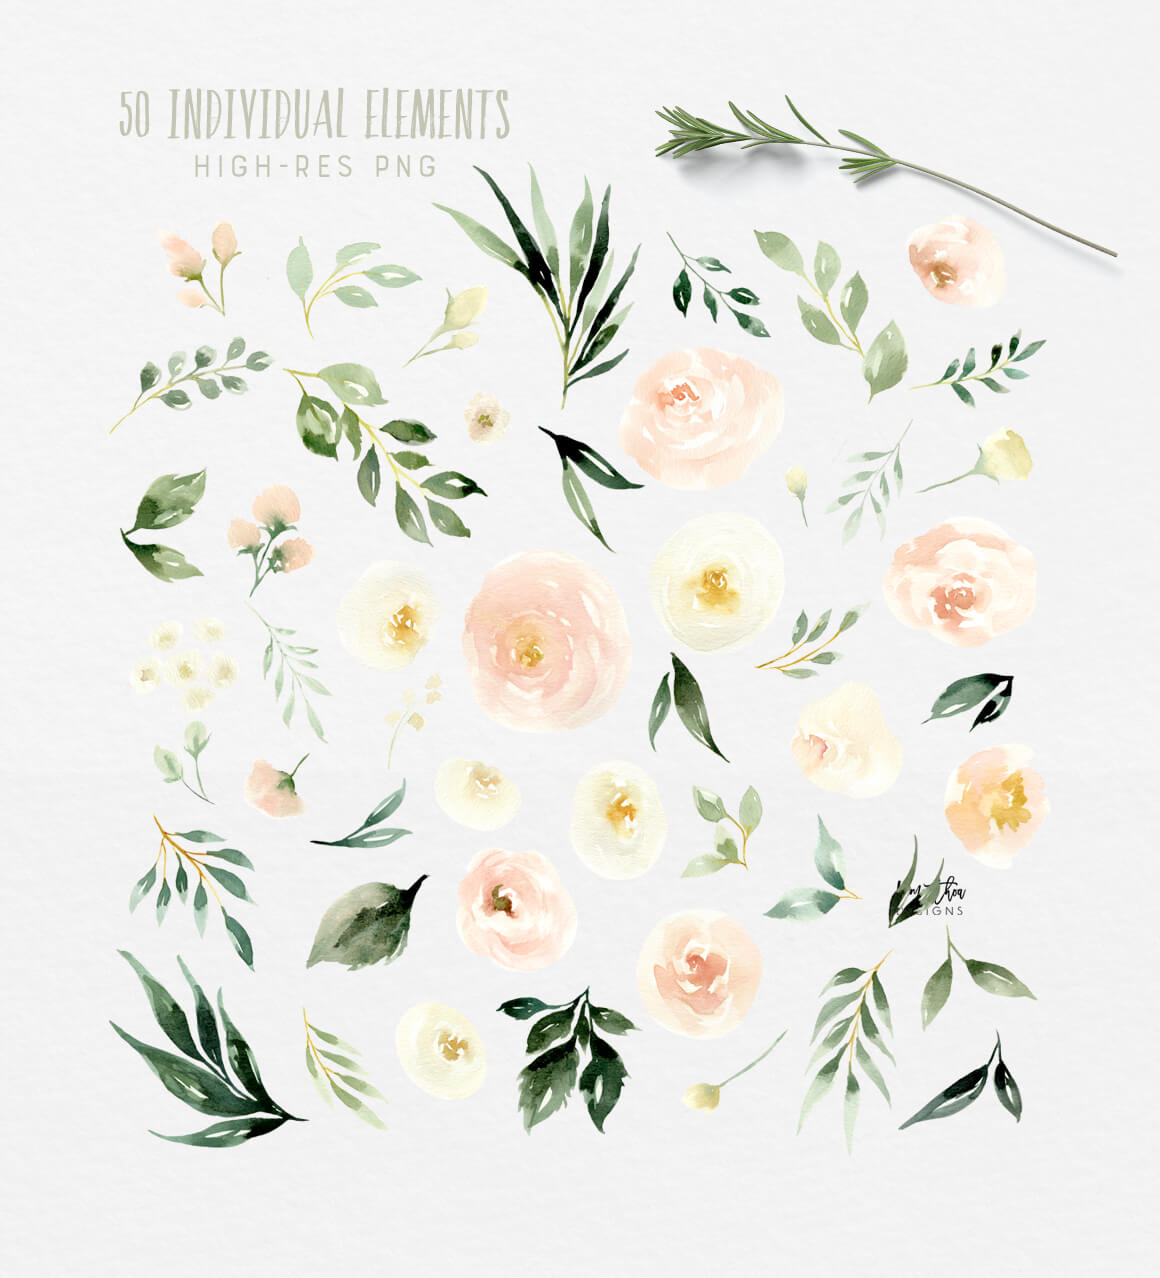 Blush and Ivory Flowers with Greenery Watercolor Design Set